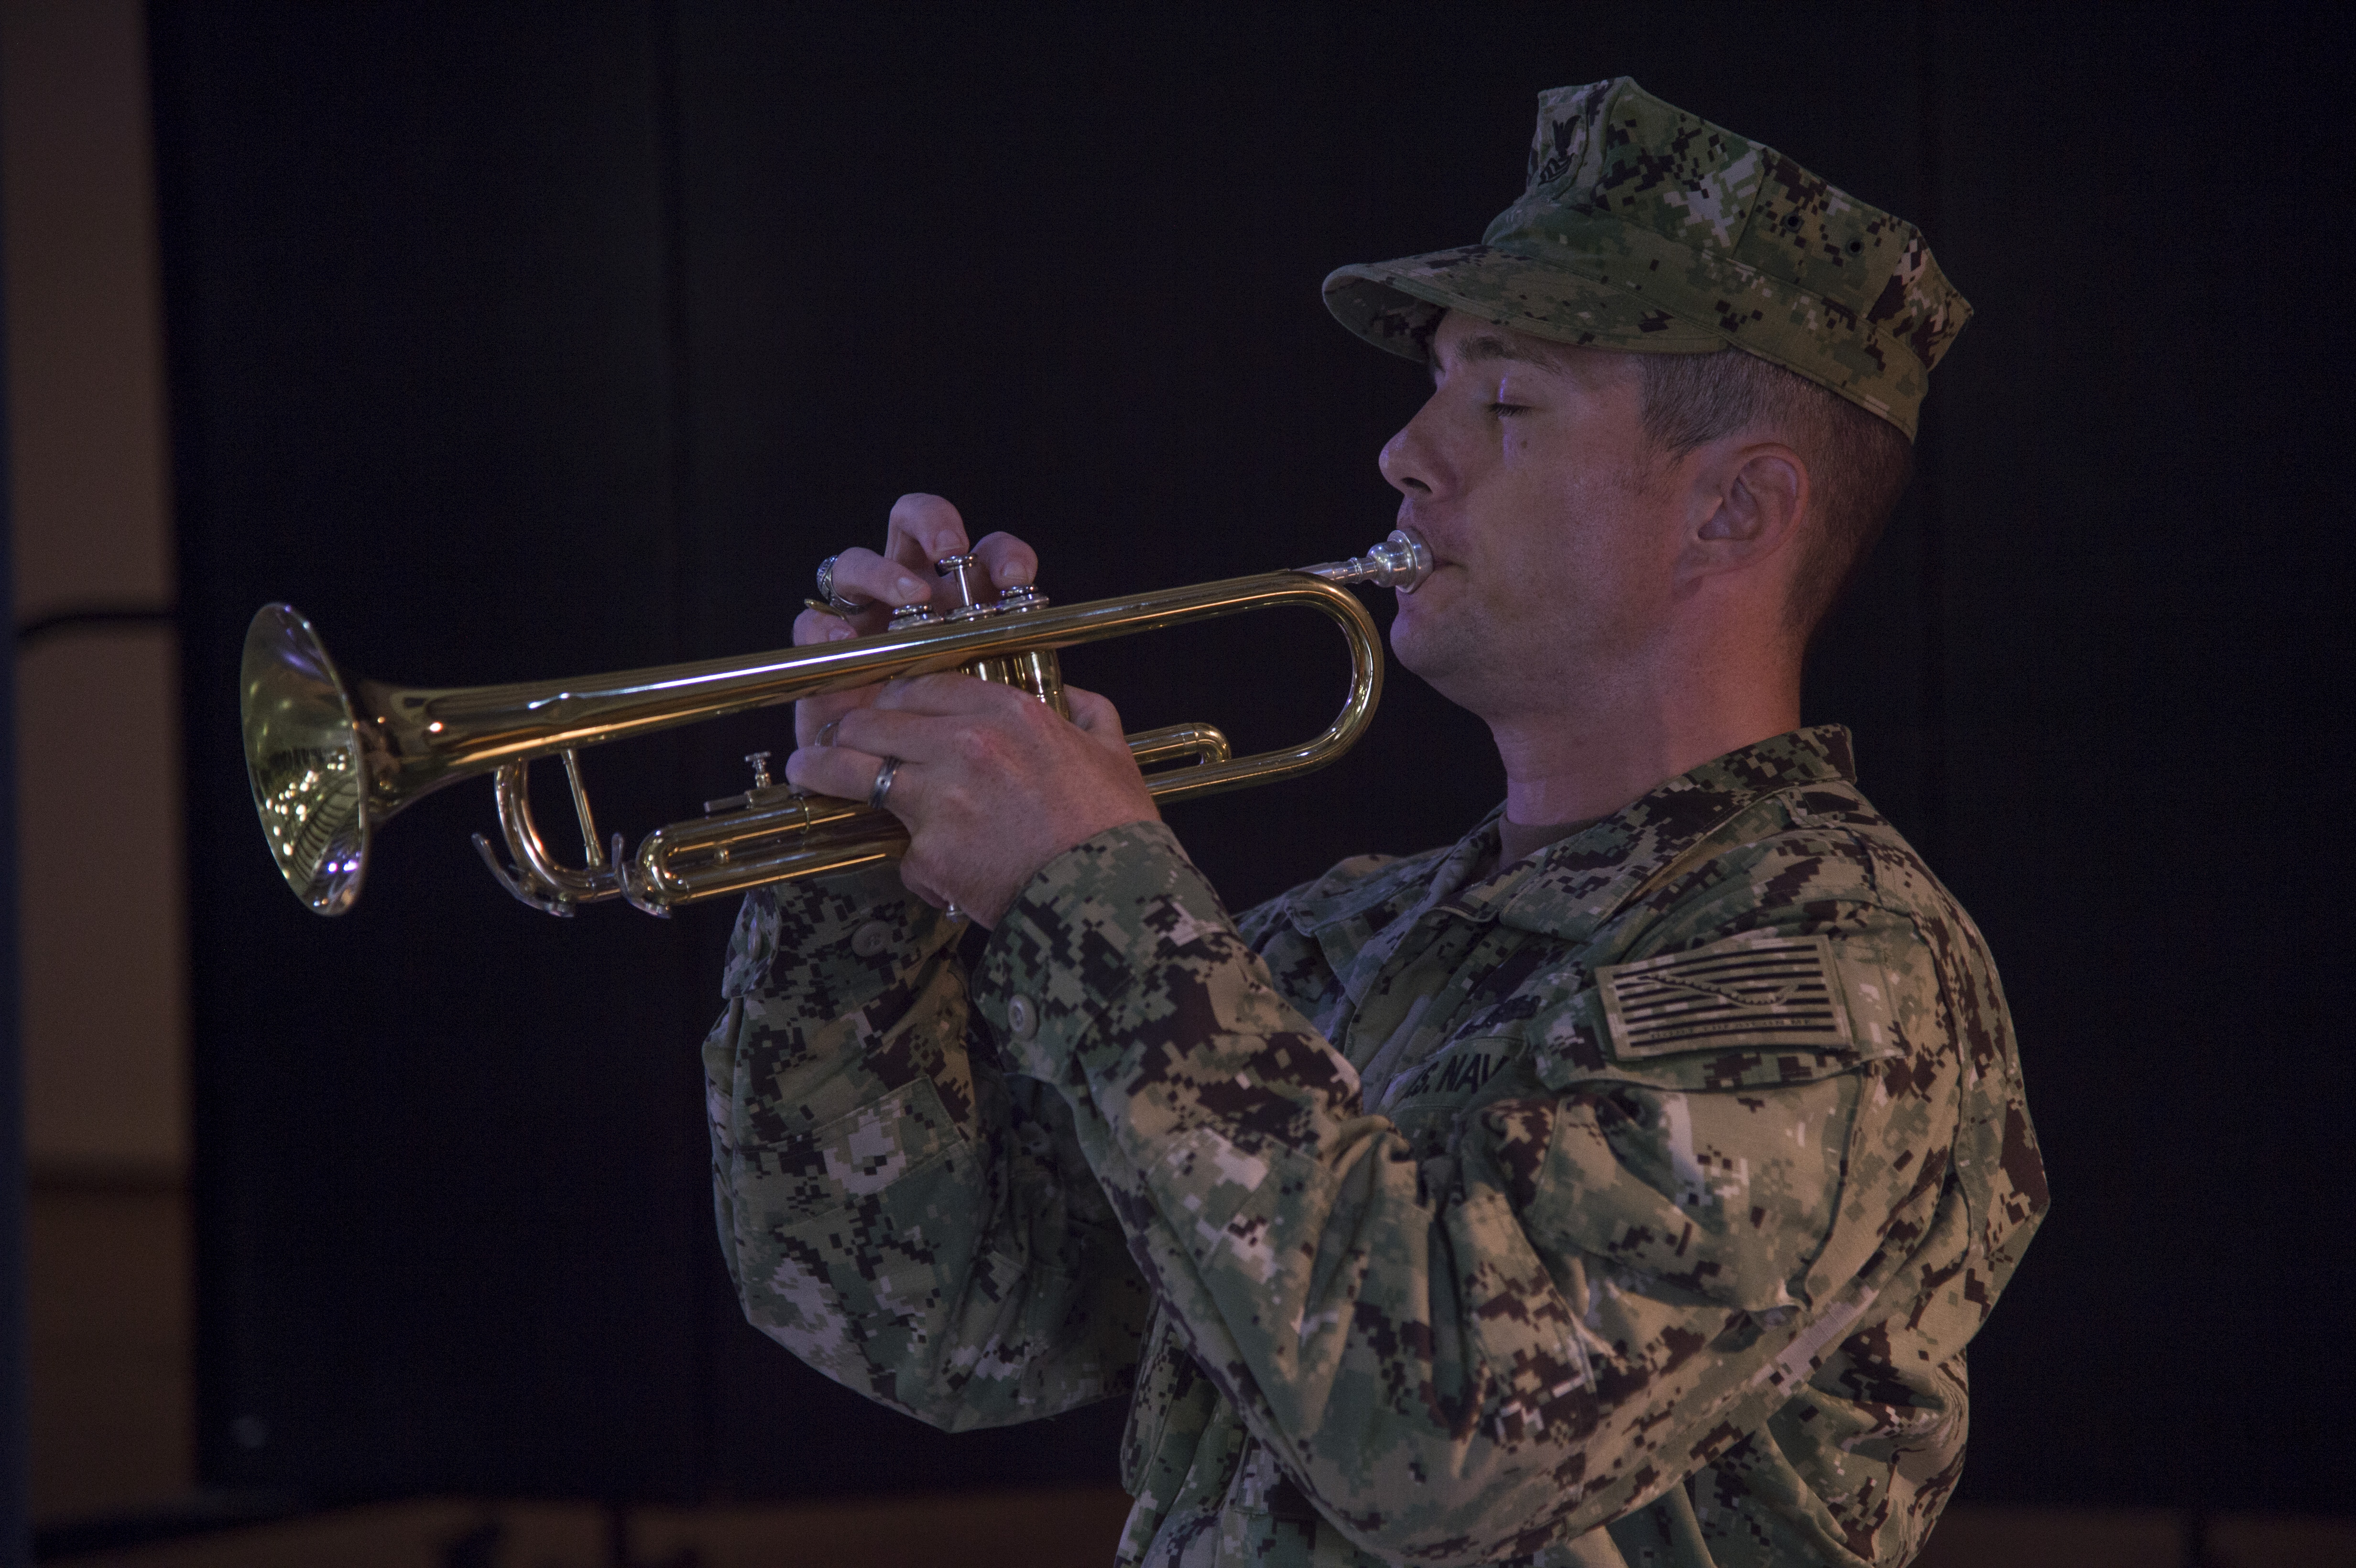 Chief Gunner's Mate (Sel) Brian Ediger plays taps at the conclusion of a 9/11 remembrance ceremony held Sept. 11, 2016, at Camp Lemonnier, Djibouti. Taps in the military represents the end of a workday or time to rest. For the ceremony, it signaled the final rest for those who lost their lives during 9/11. The ceremony was organized and conducted by Fiscal Year 2017 Chief Petty Officer selectees from Camp Lemonnier and Combined Joint Task Force - Horn of Africa.  (U.S. Air Force photo by Staff Sgt. Eric Summers Jr.)